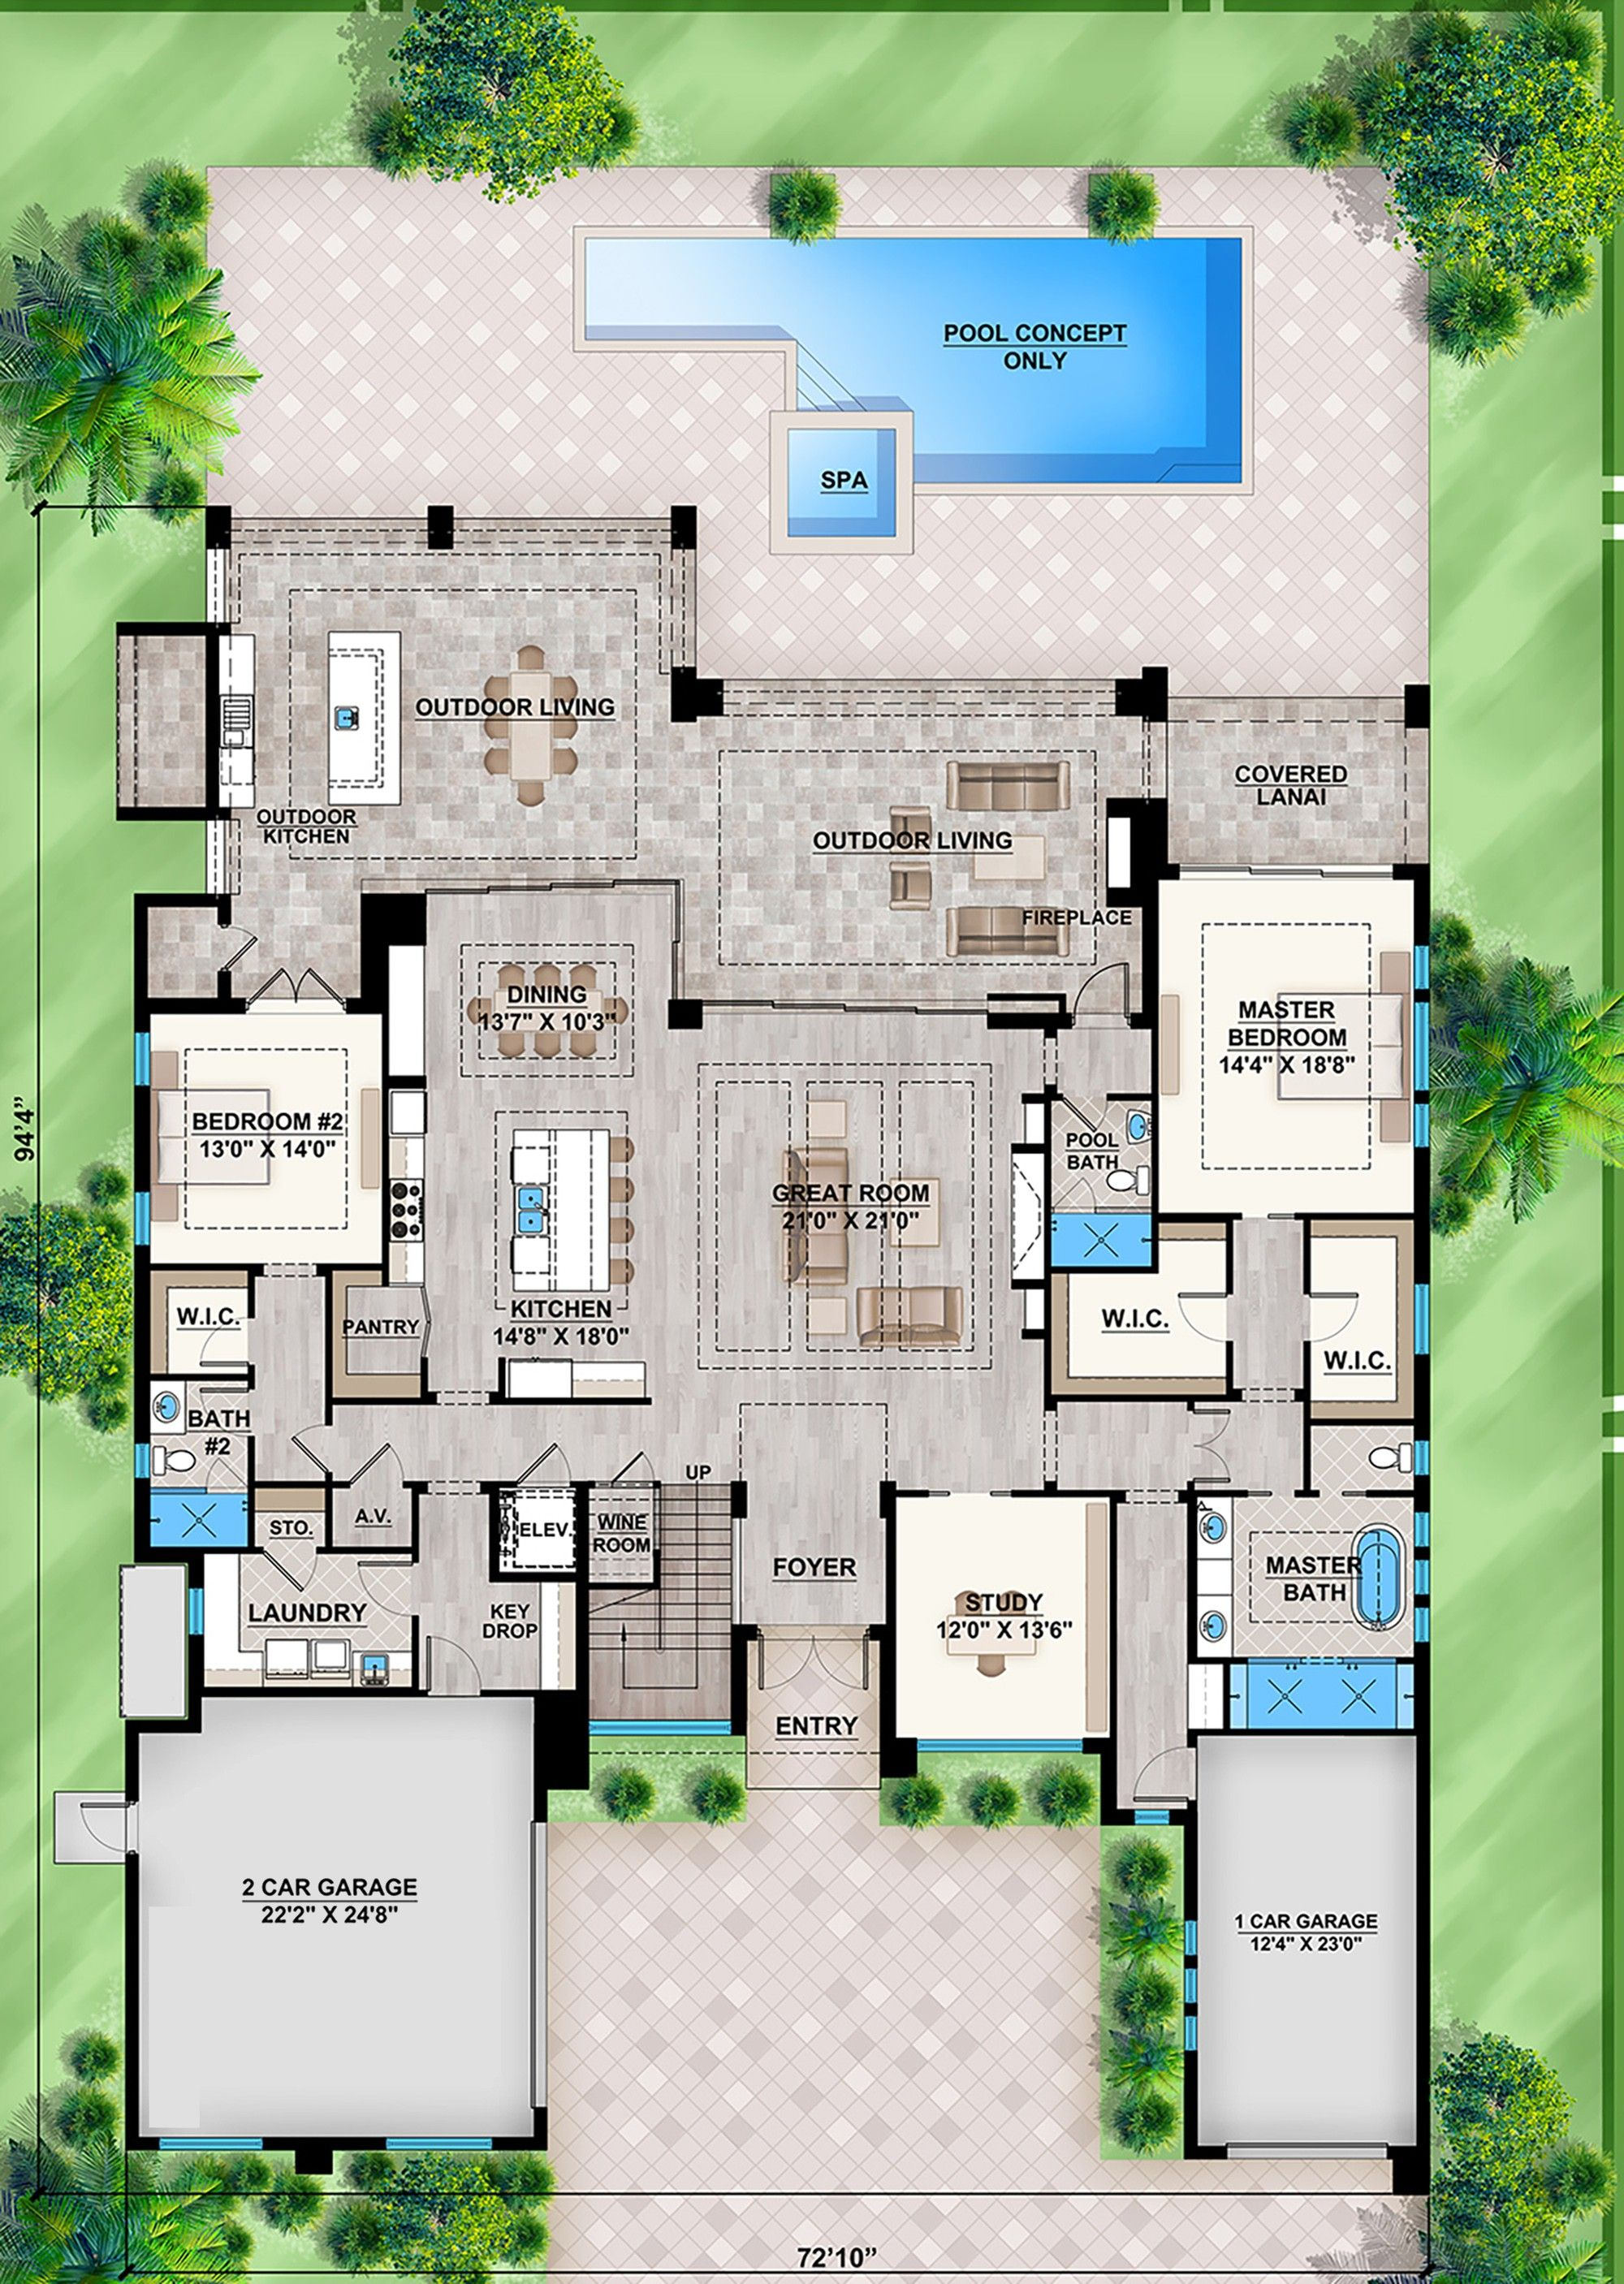 House Plan 207 00075 Contemporary Plan 4 232 Square Feet 4 Bedrooms 5 Bathrooms In 2021 Pool House Plans Courtyard House Plans Dream House Plans